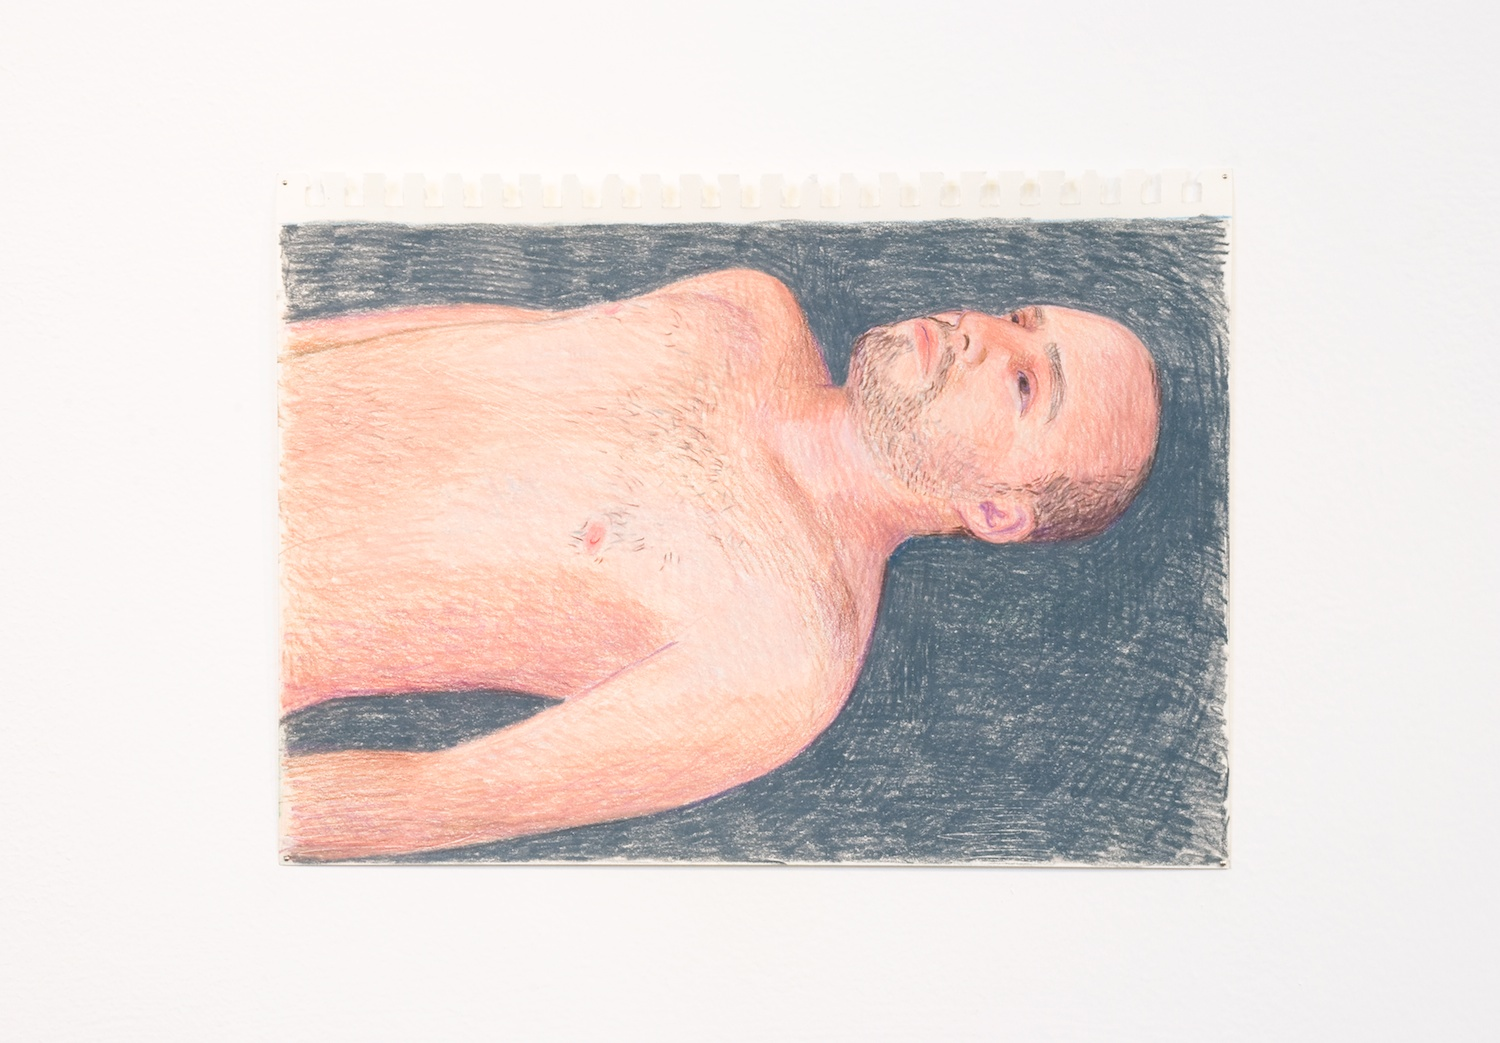 Elijah Burgher  JCDC (crisis of intentions)  2010 Colored pencil on paper 8h x 12w in EB011